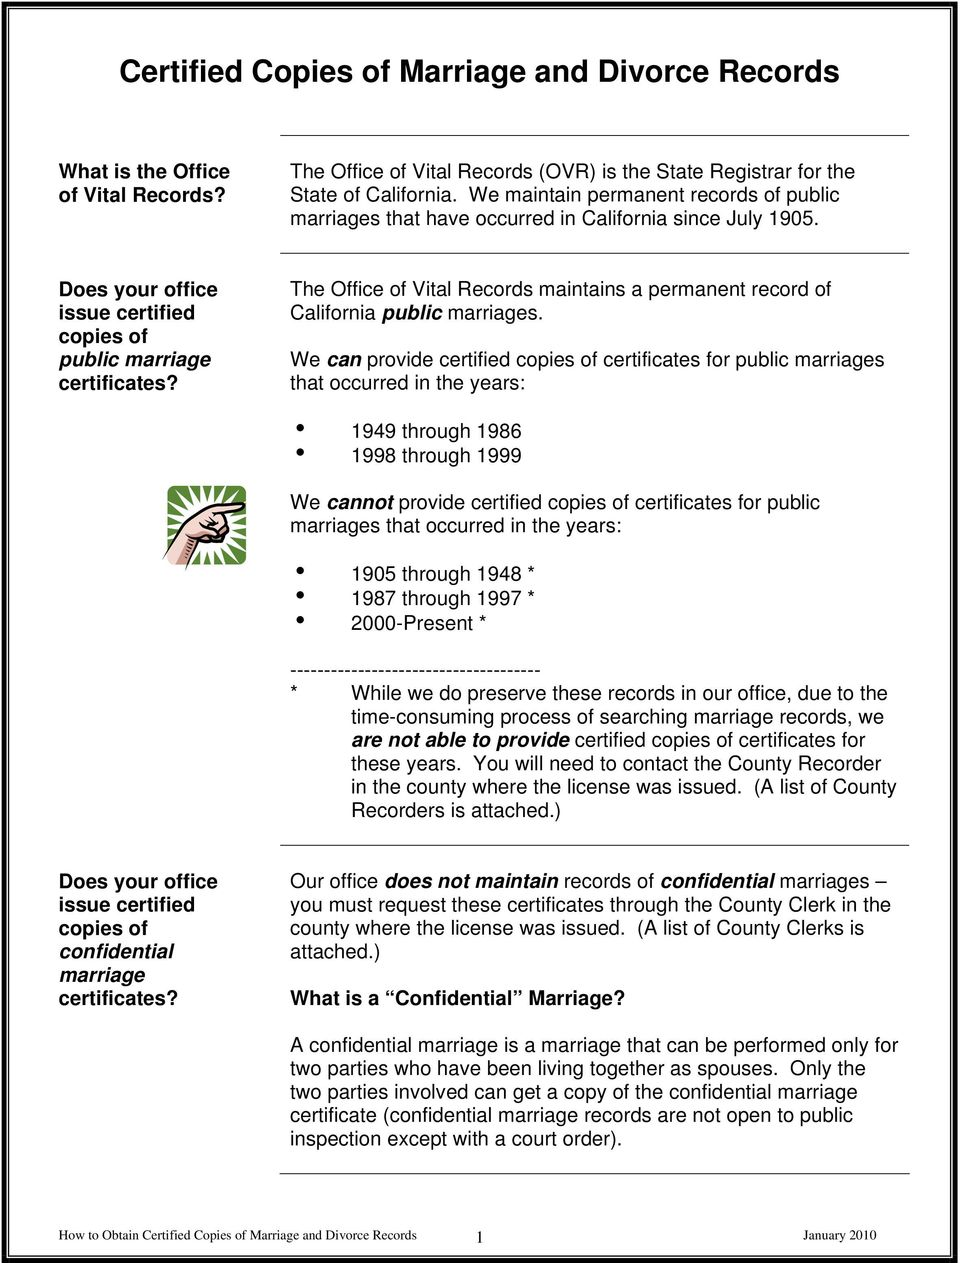 How To Obtain Certified Copies Of Marriage And Divorce Records Pdf